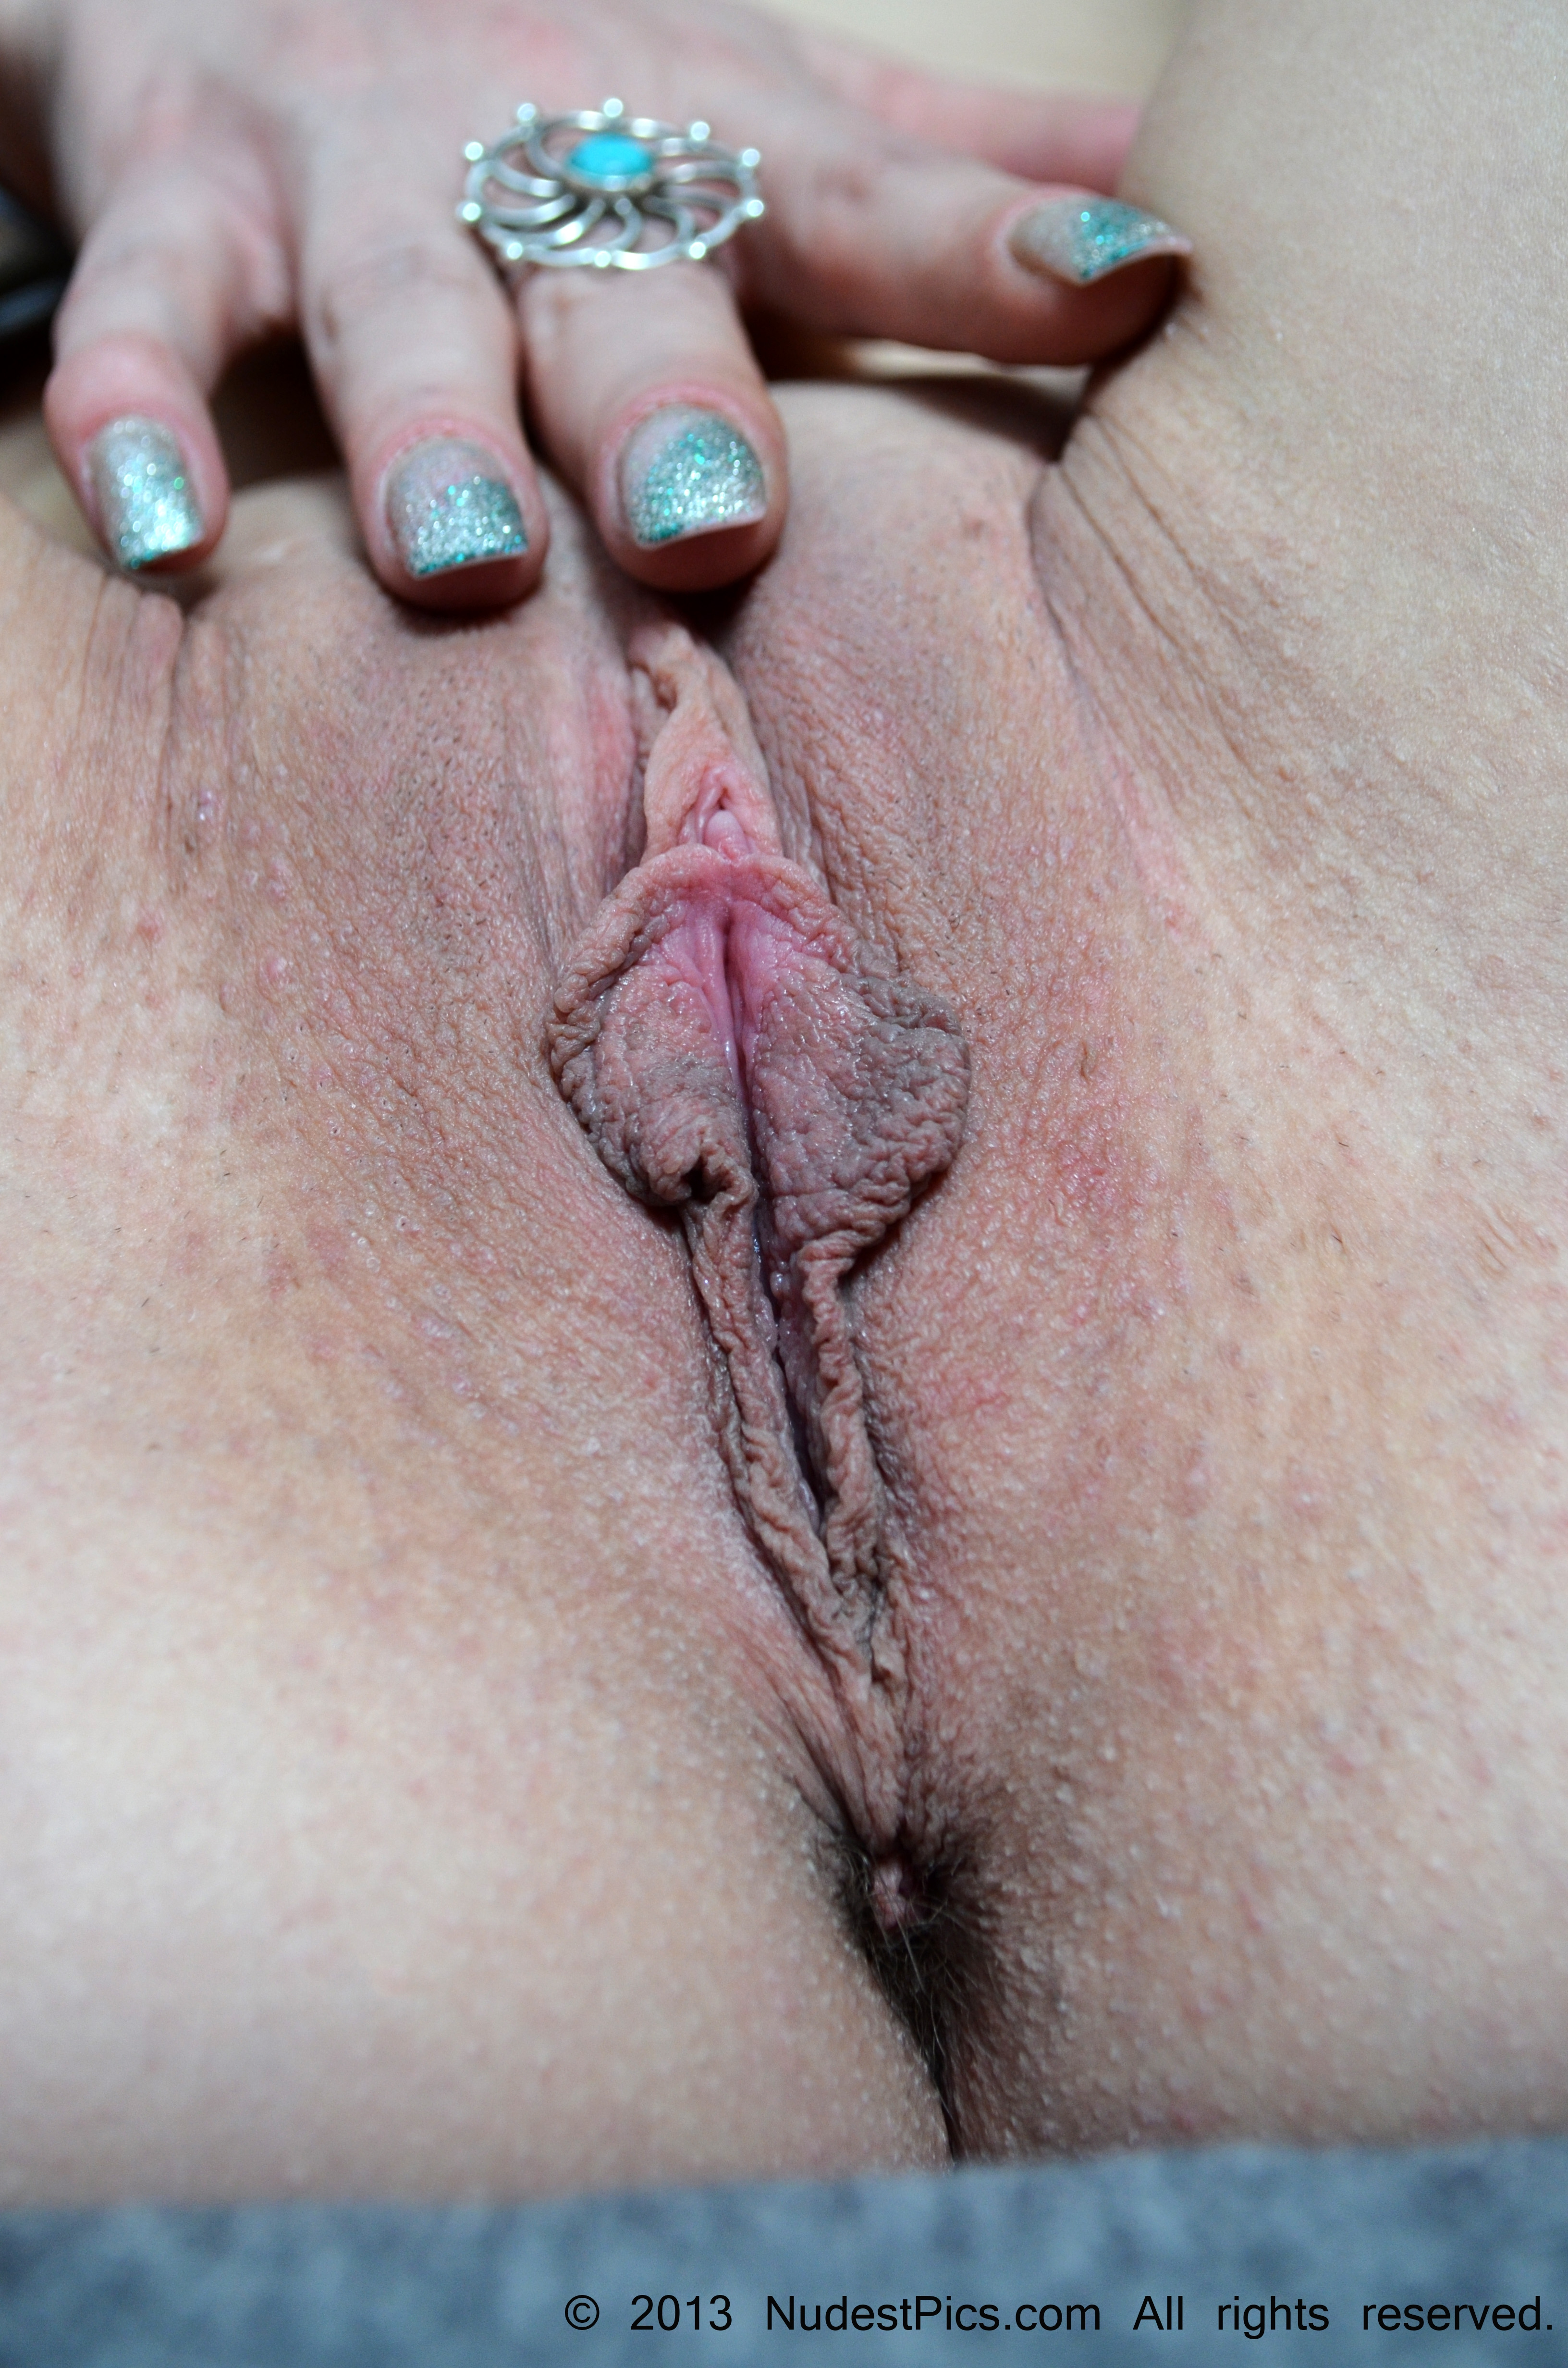 Pussy with Elongated Labia